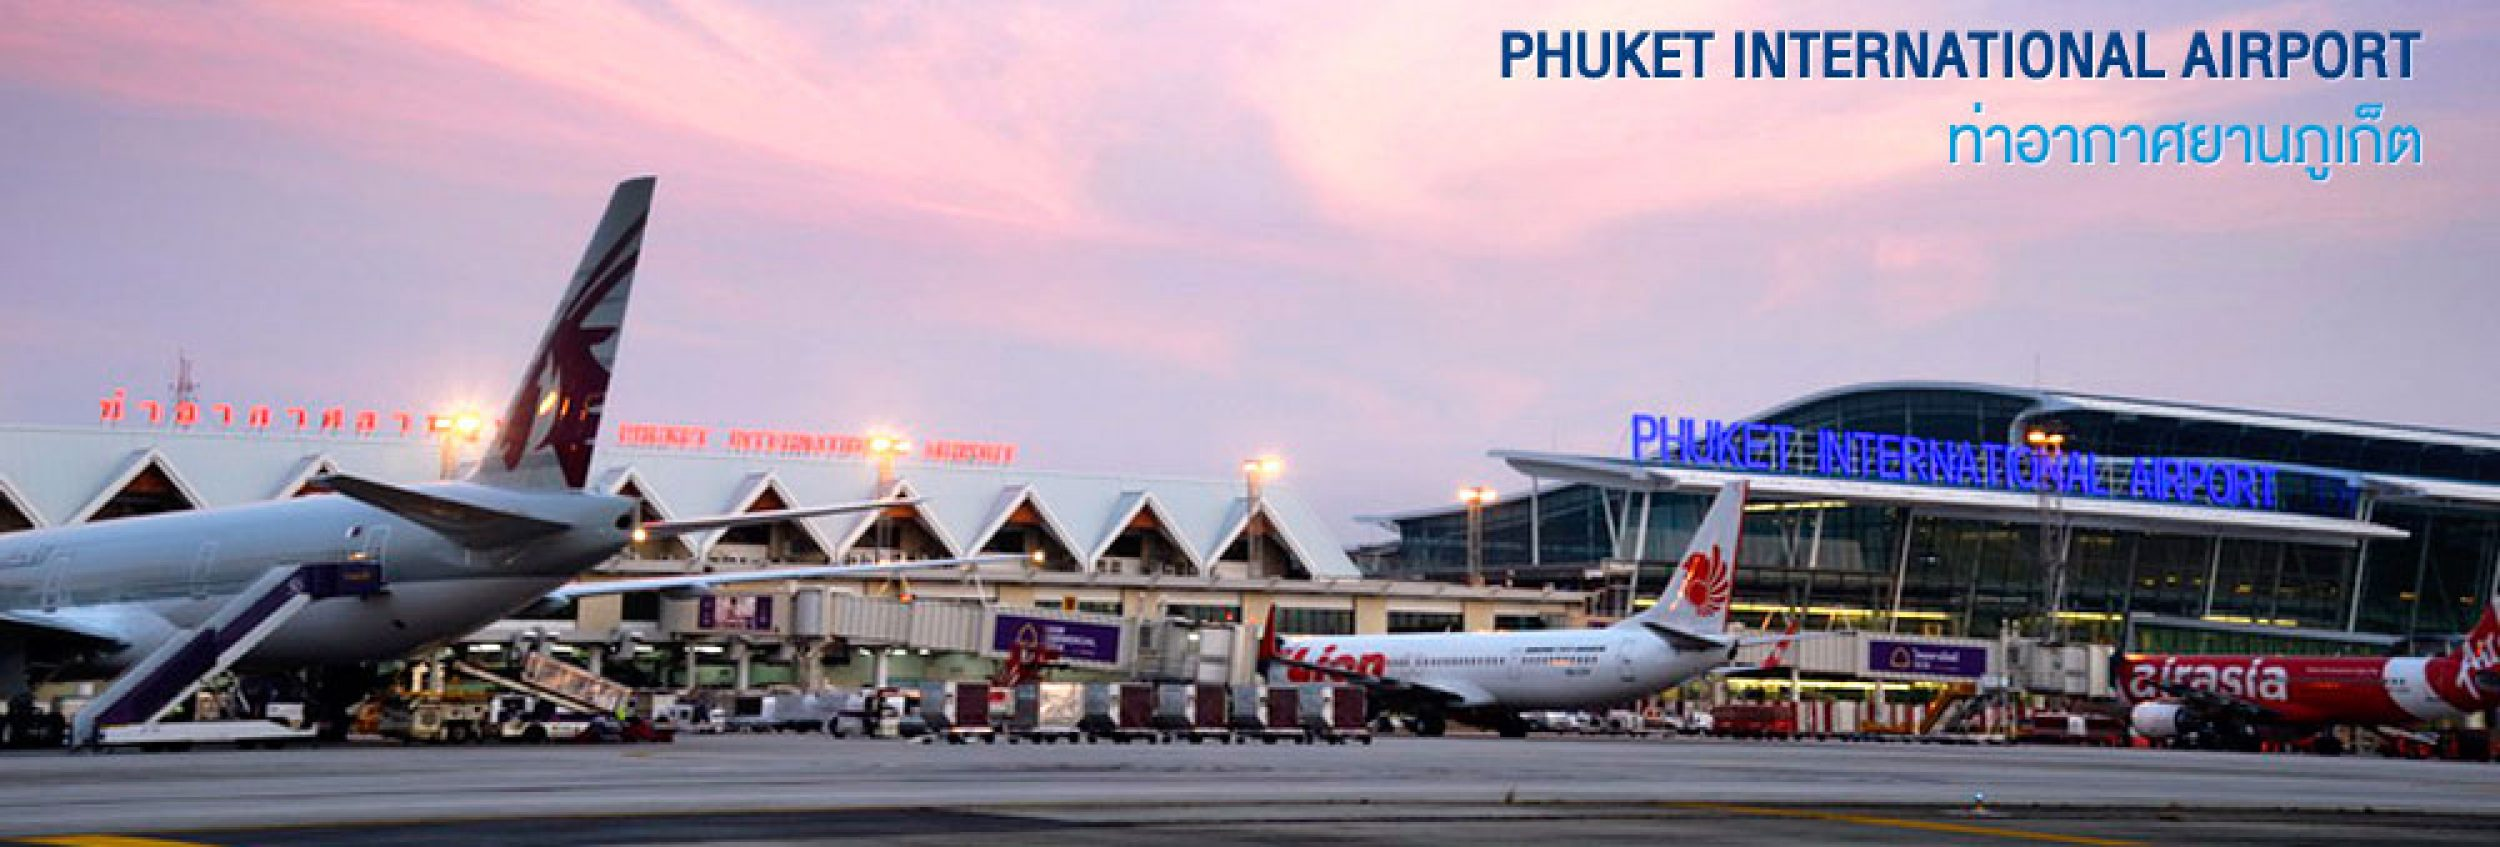 Phuketairportthai – Informasi International Airport Thailand